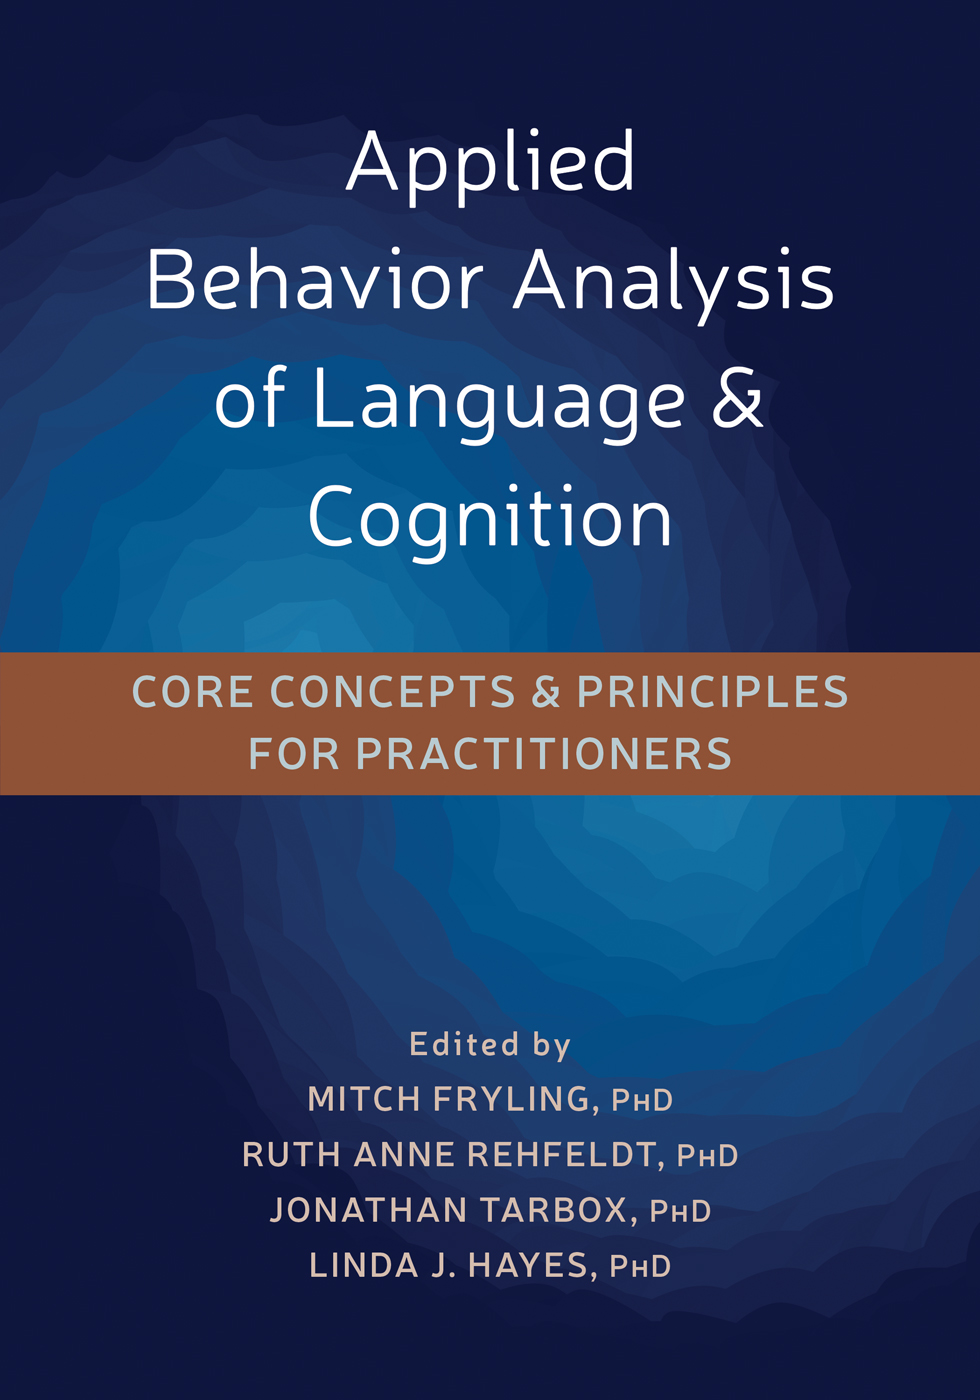 Applied Behavior Analysis of Language and Cognition